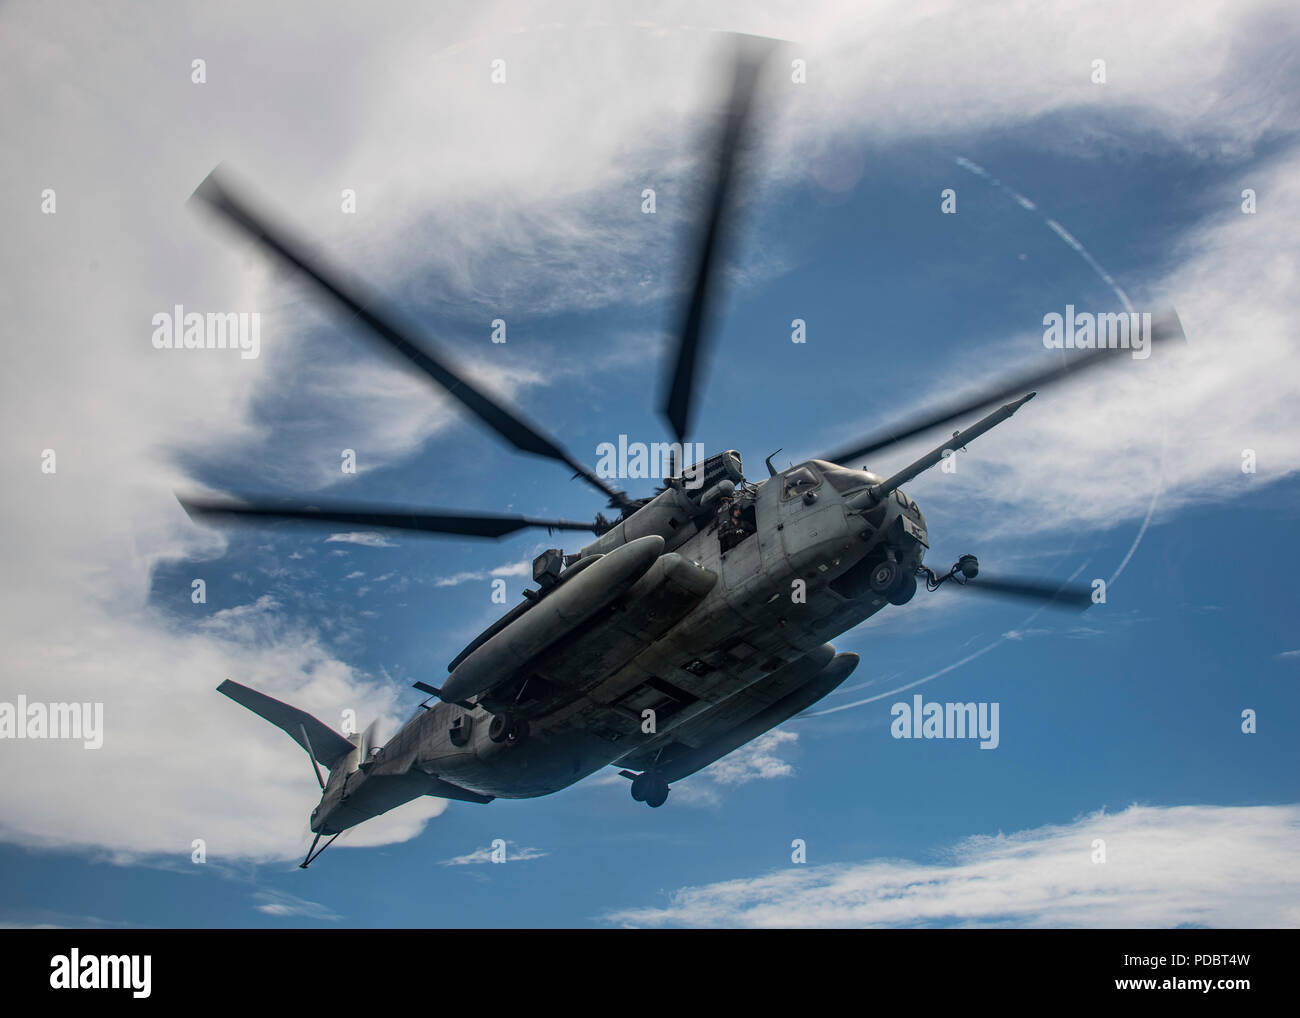 ATLANTIC OCEAN (Aug. 4, 2018) A CH-53E Super Stallion helicopter, attached to Marine Medium Tiltrotor Squadron (VMM) 162 (Reinforced), prepares to land on the Wasp-class amphibious assault ship USS Iwo Jima (LHD 7), Aug. 4, 2018. Iwo Jima is deployed with its amphibious ready group in support of maritime security operations and theatre security cooperation efforts in Europe and the Middle East. (U.S. Navy photo by Mass Communication Specialist 3rd Class Dominick A. Cremeans/Released) Stock Photo